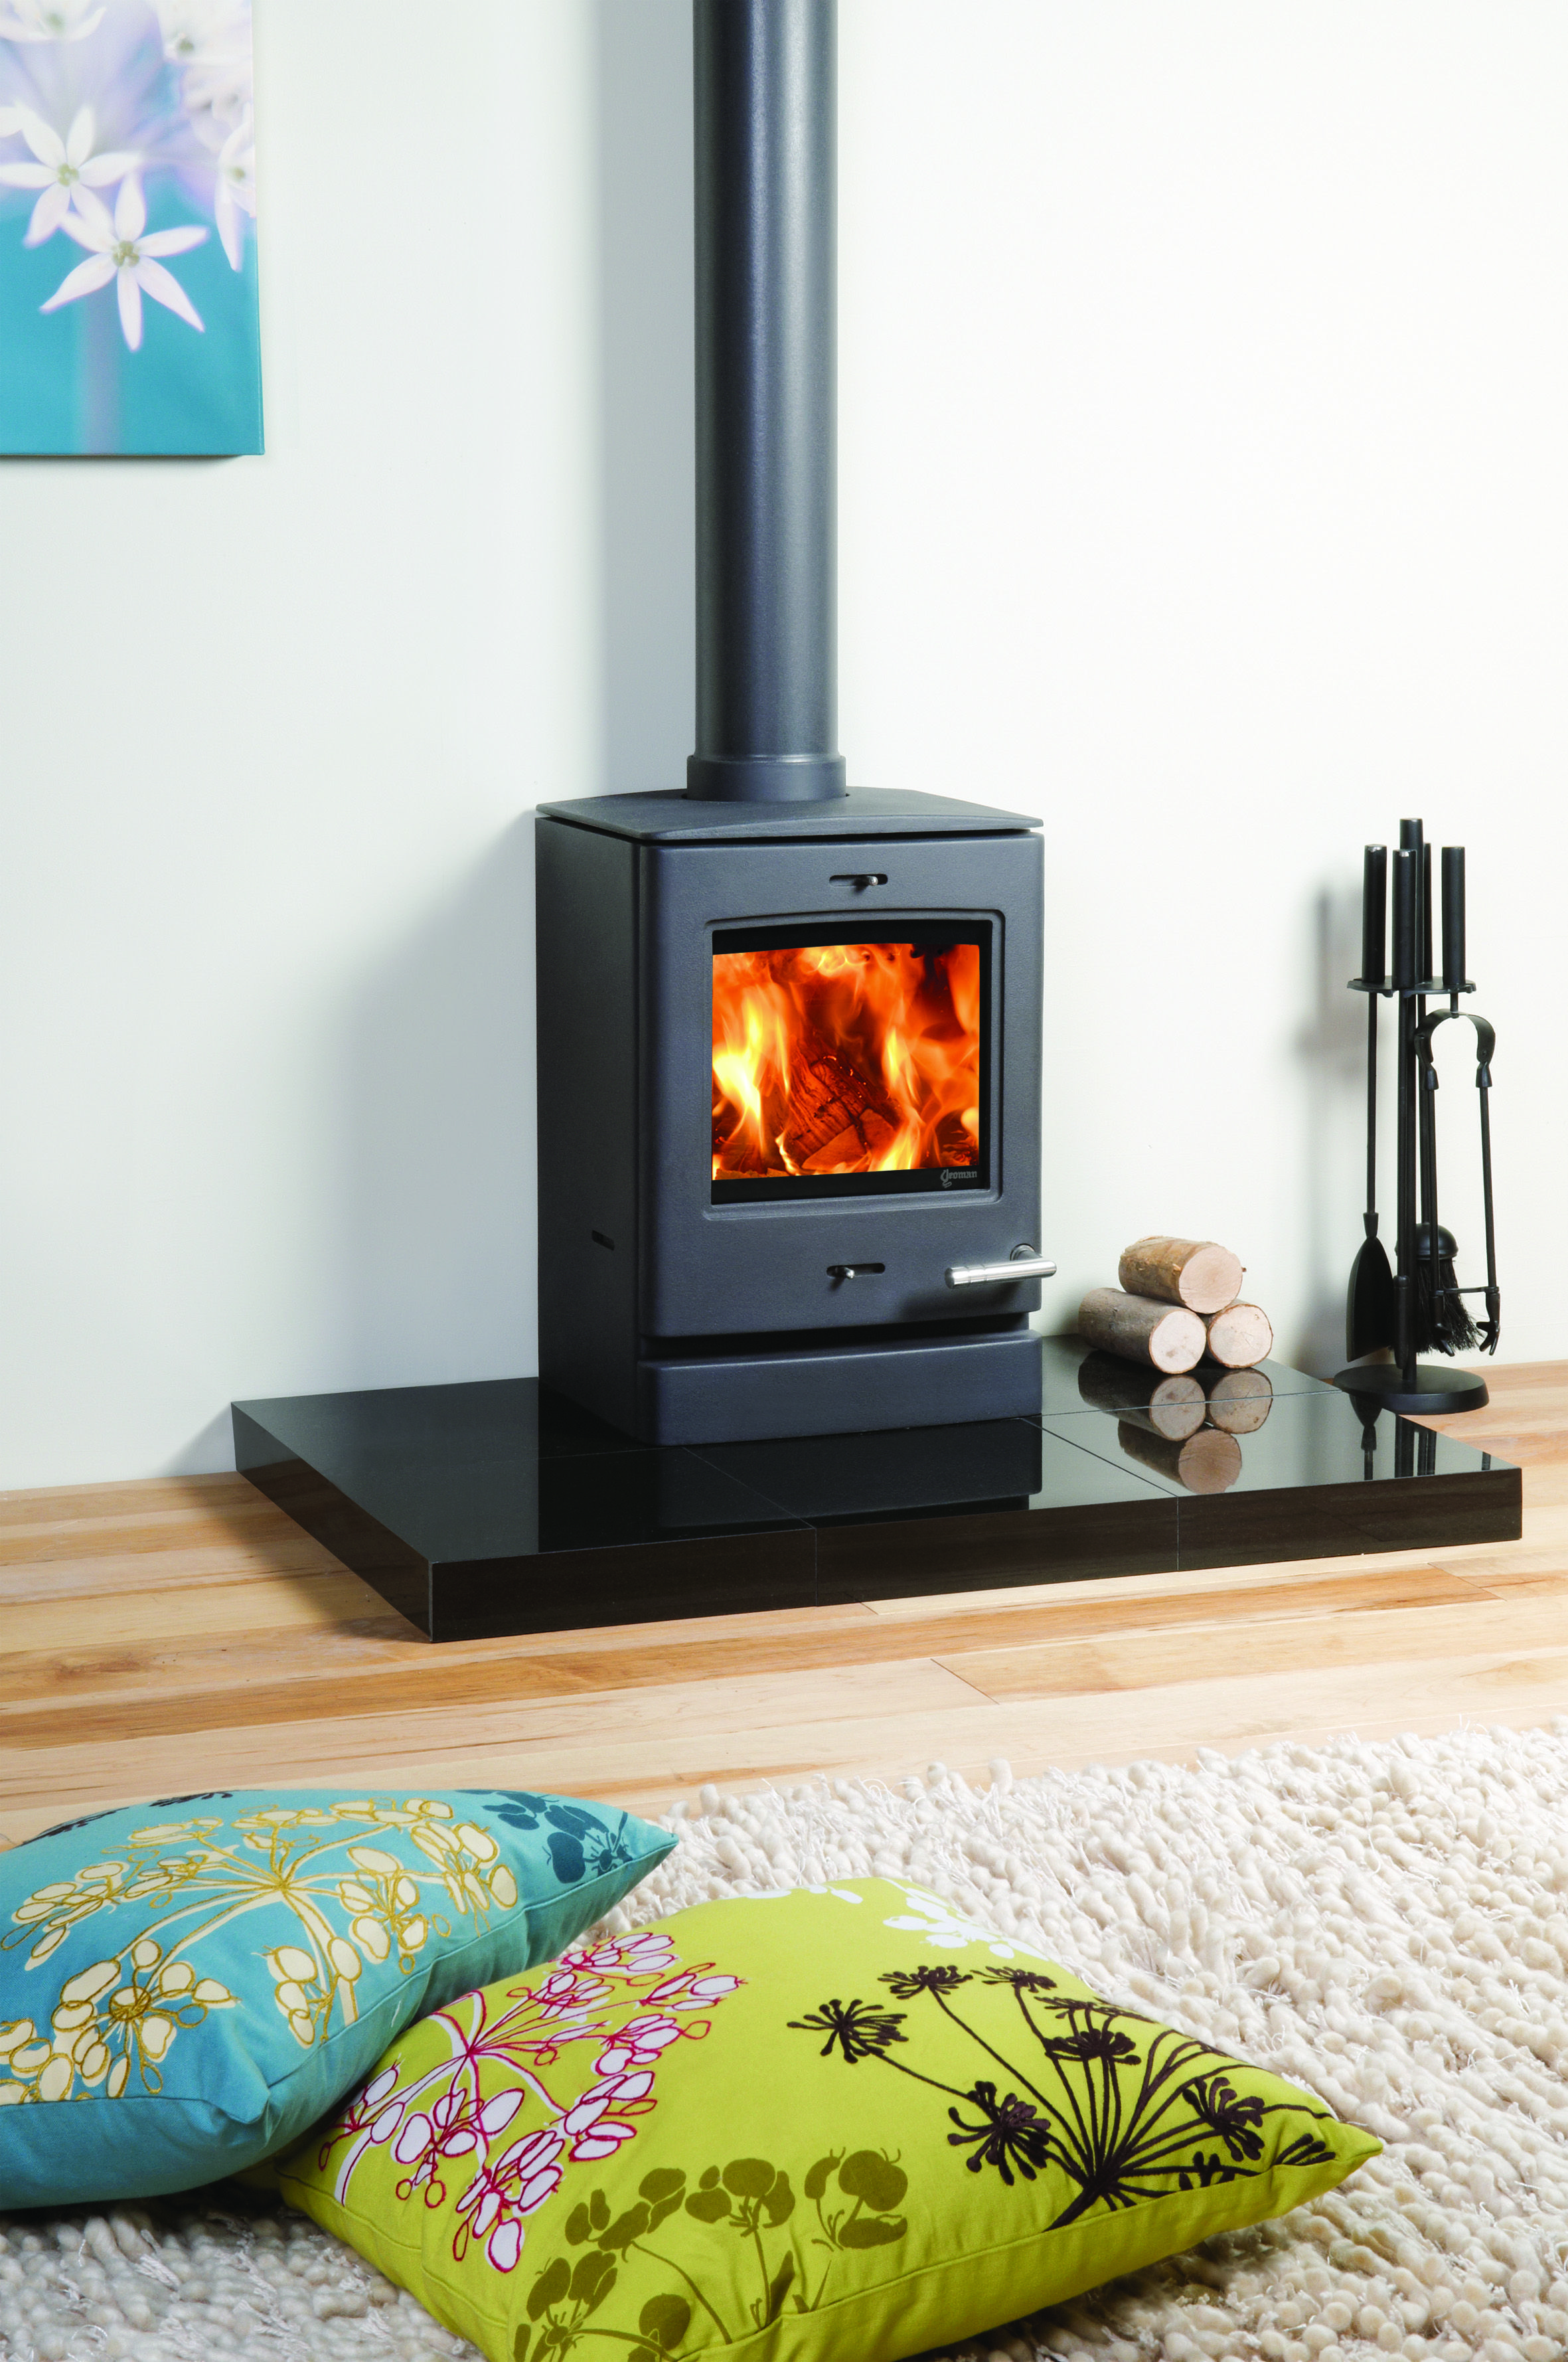 On The Lookout For A Shaggy Rug To Lye In Front Of Our New Wood Heater This Wint Freest Wood Heater Freestanding Fireplace Boiler Stoves